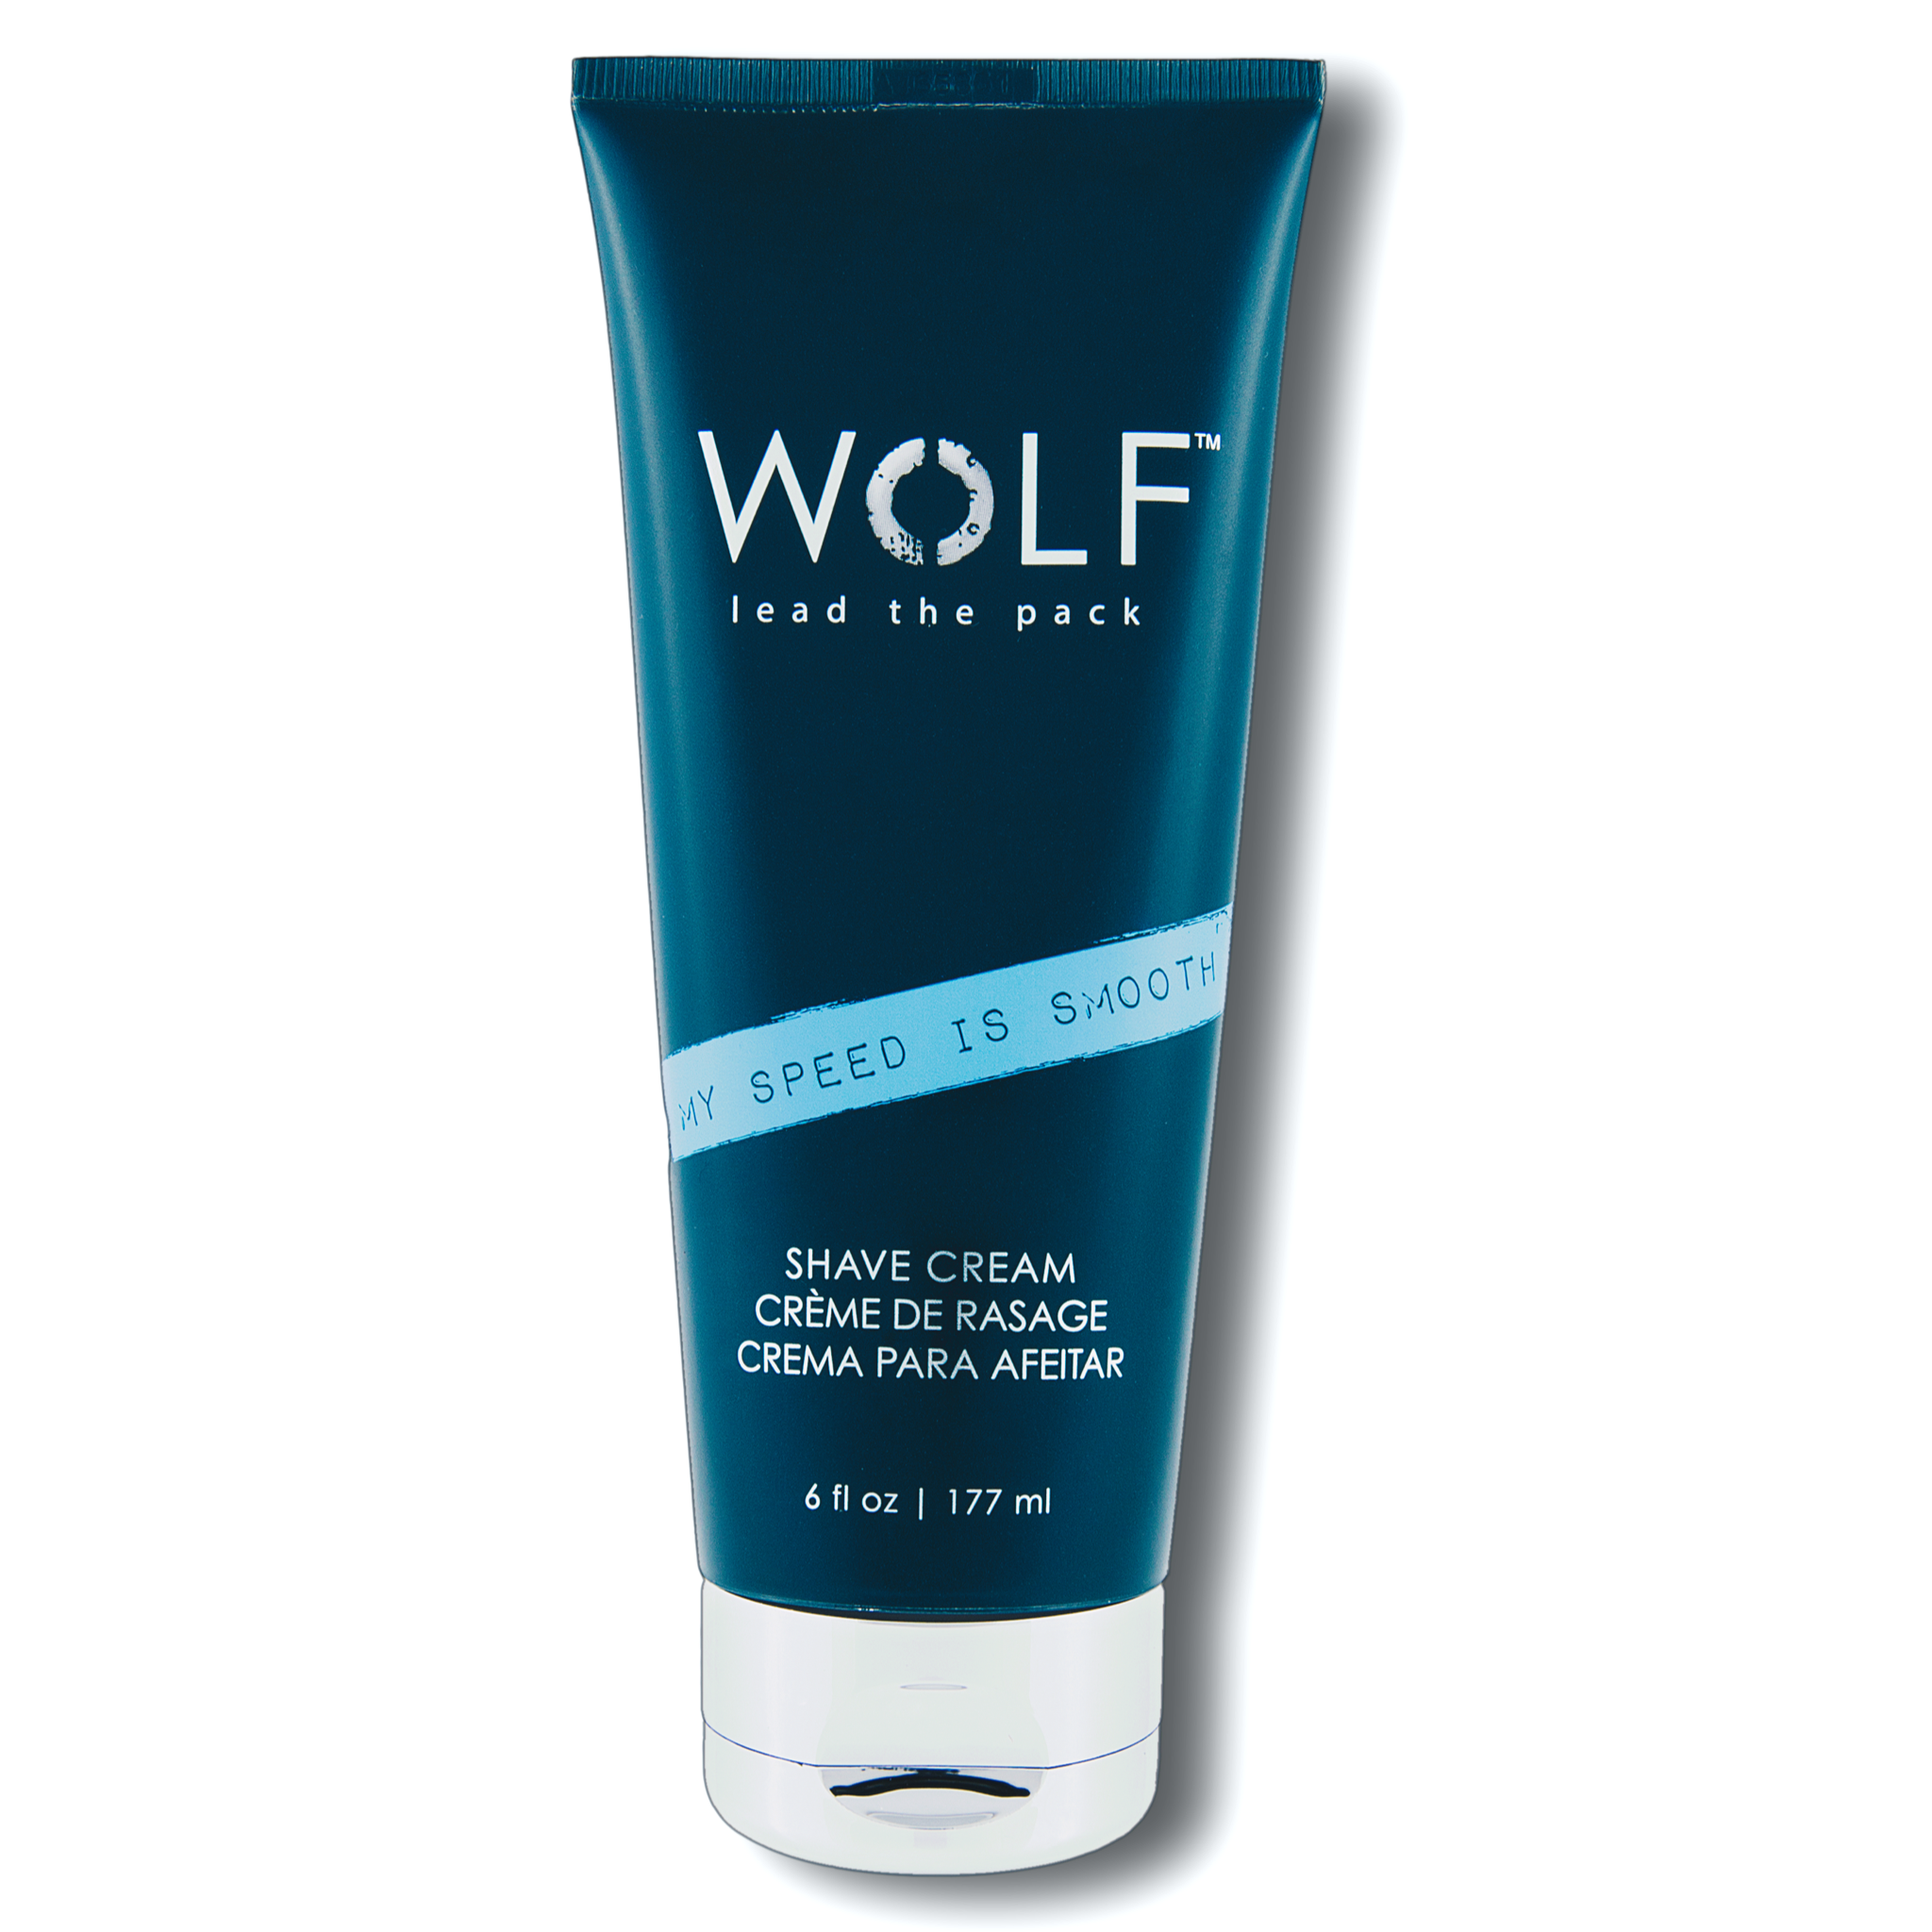 MY SPEED IS SMOOTH Shave Cream, 6 fl oz - Wolf Grooming